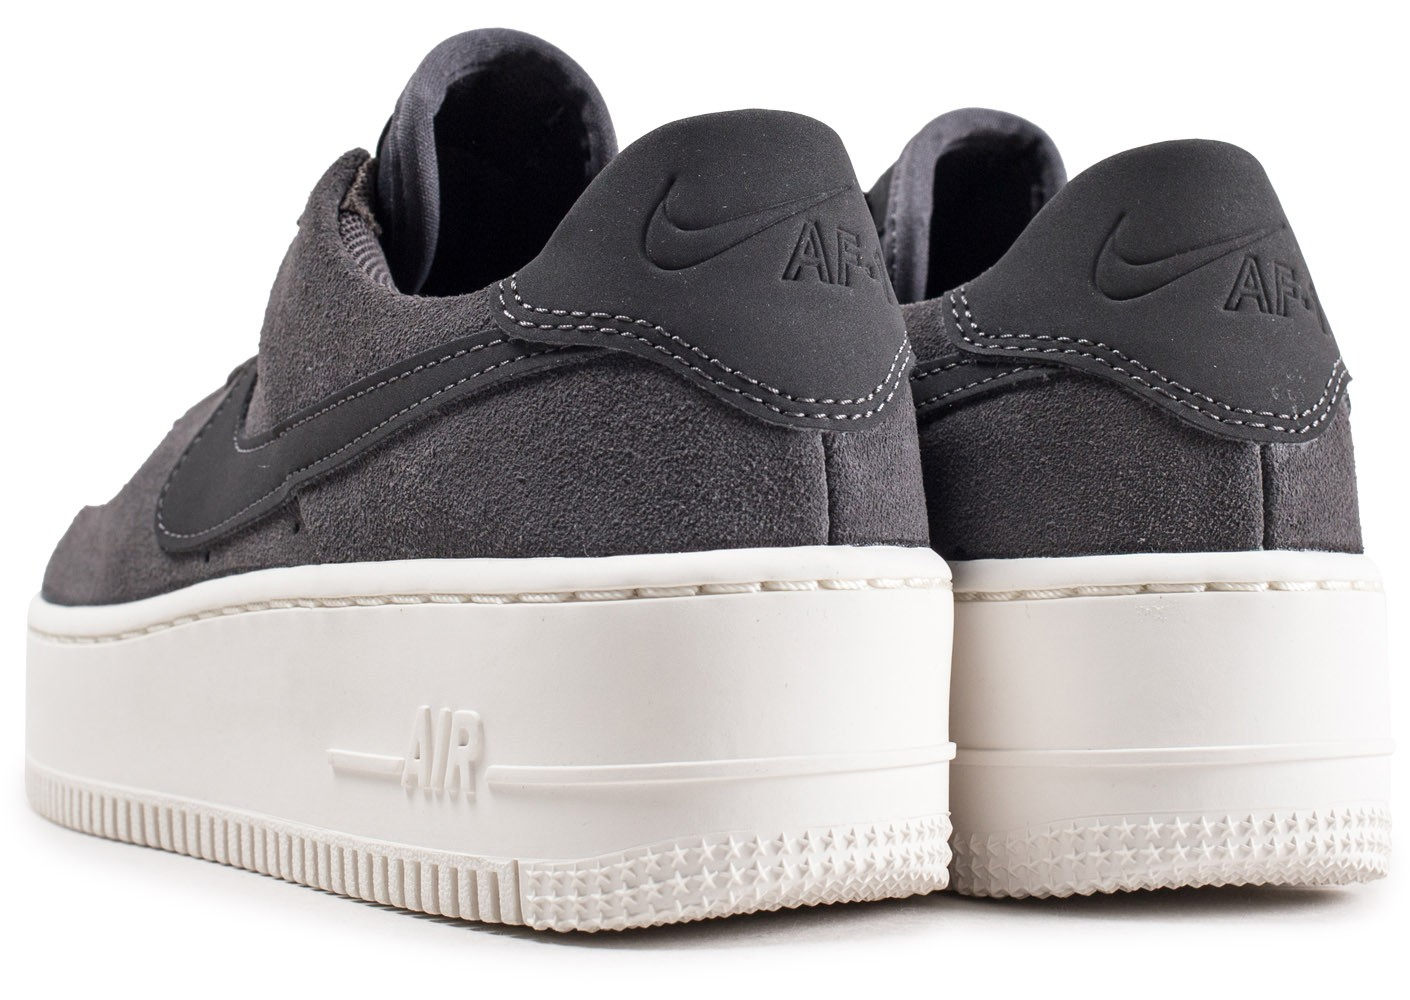 Nike Air Force 1 Sage Low gris femme Chaussures Baskets